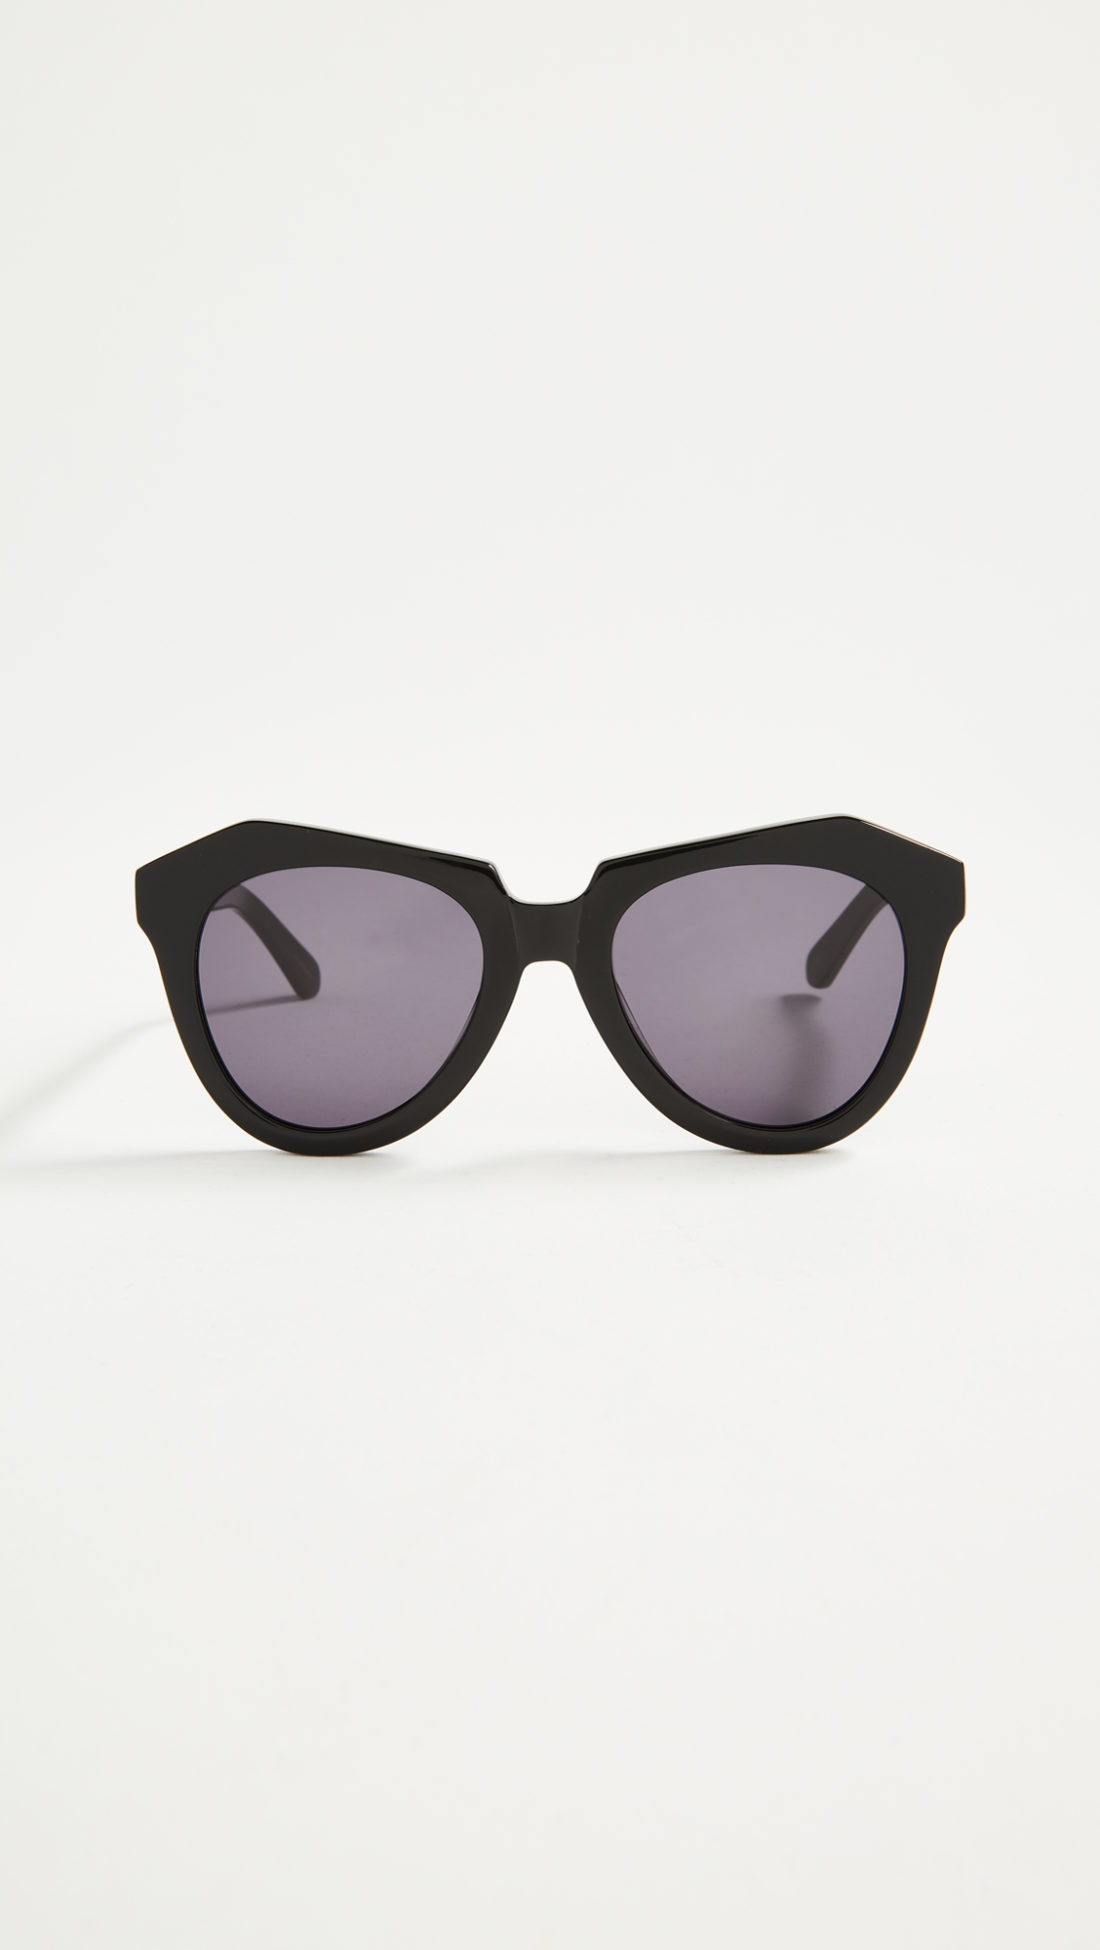 Karen Walker Number One Sunglasses - Shopbop sale recommendations by popular North Carolina fashion blogger Glitter, Inc.